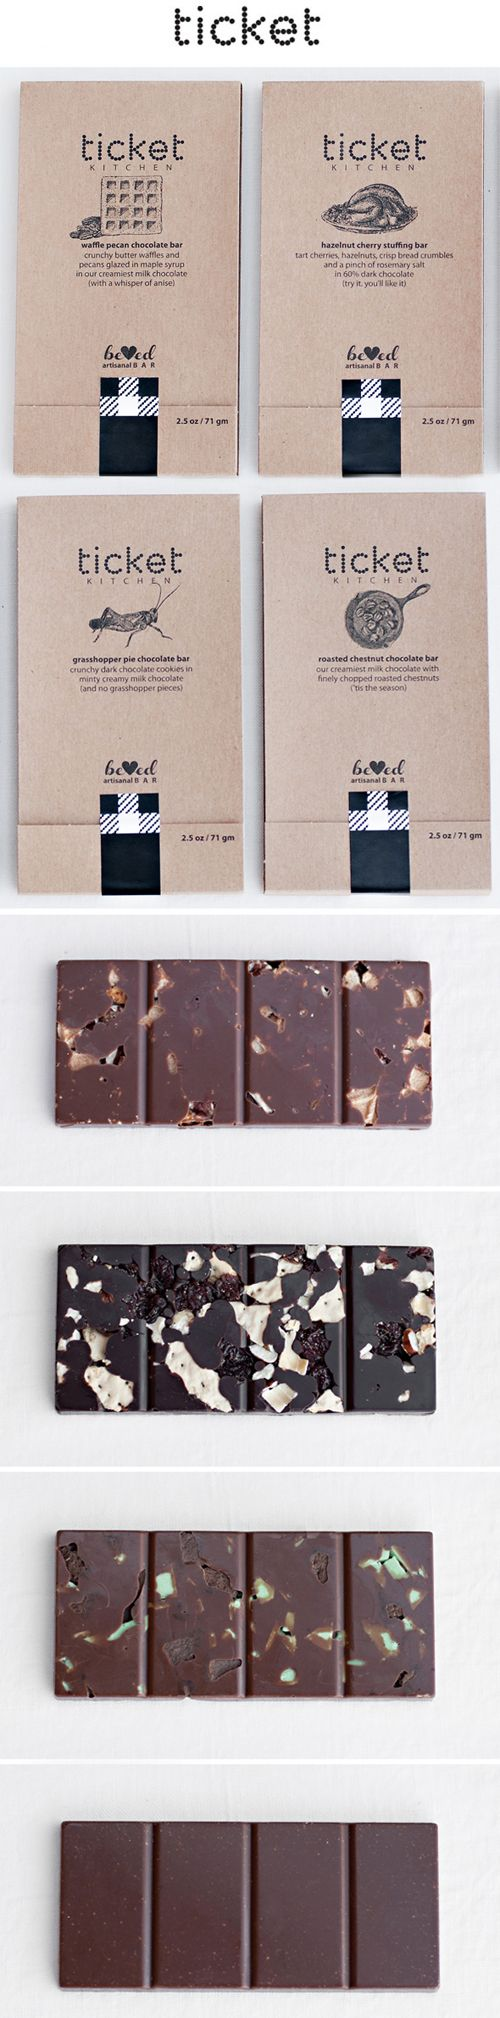 129 best gourmet chocolate packaging images on Pinterest ...